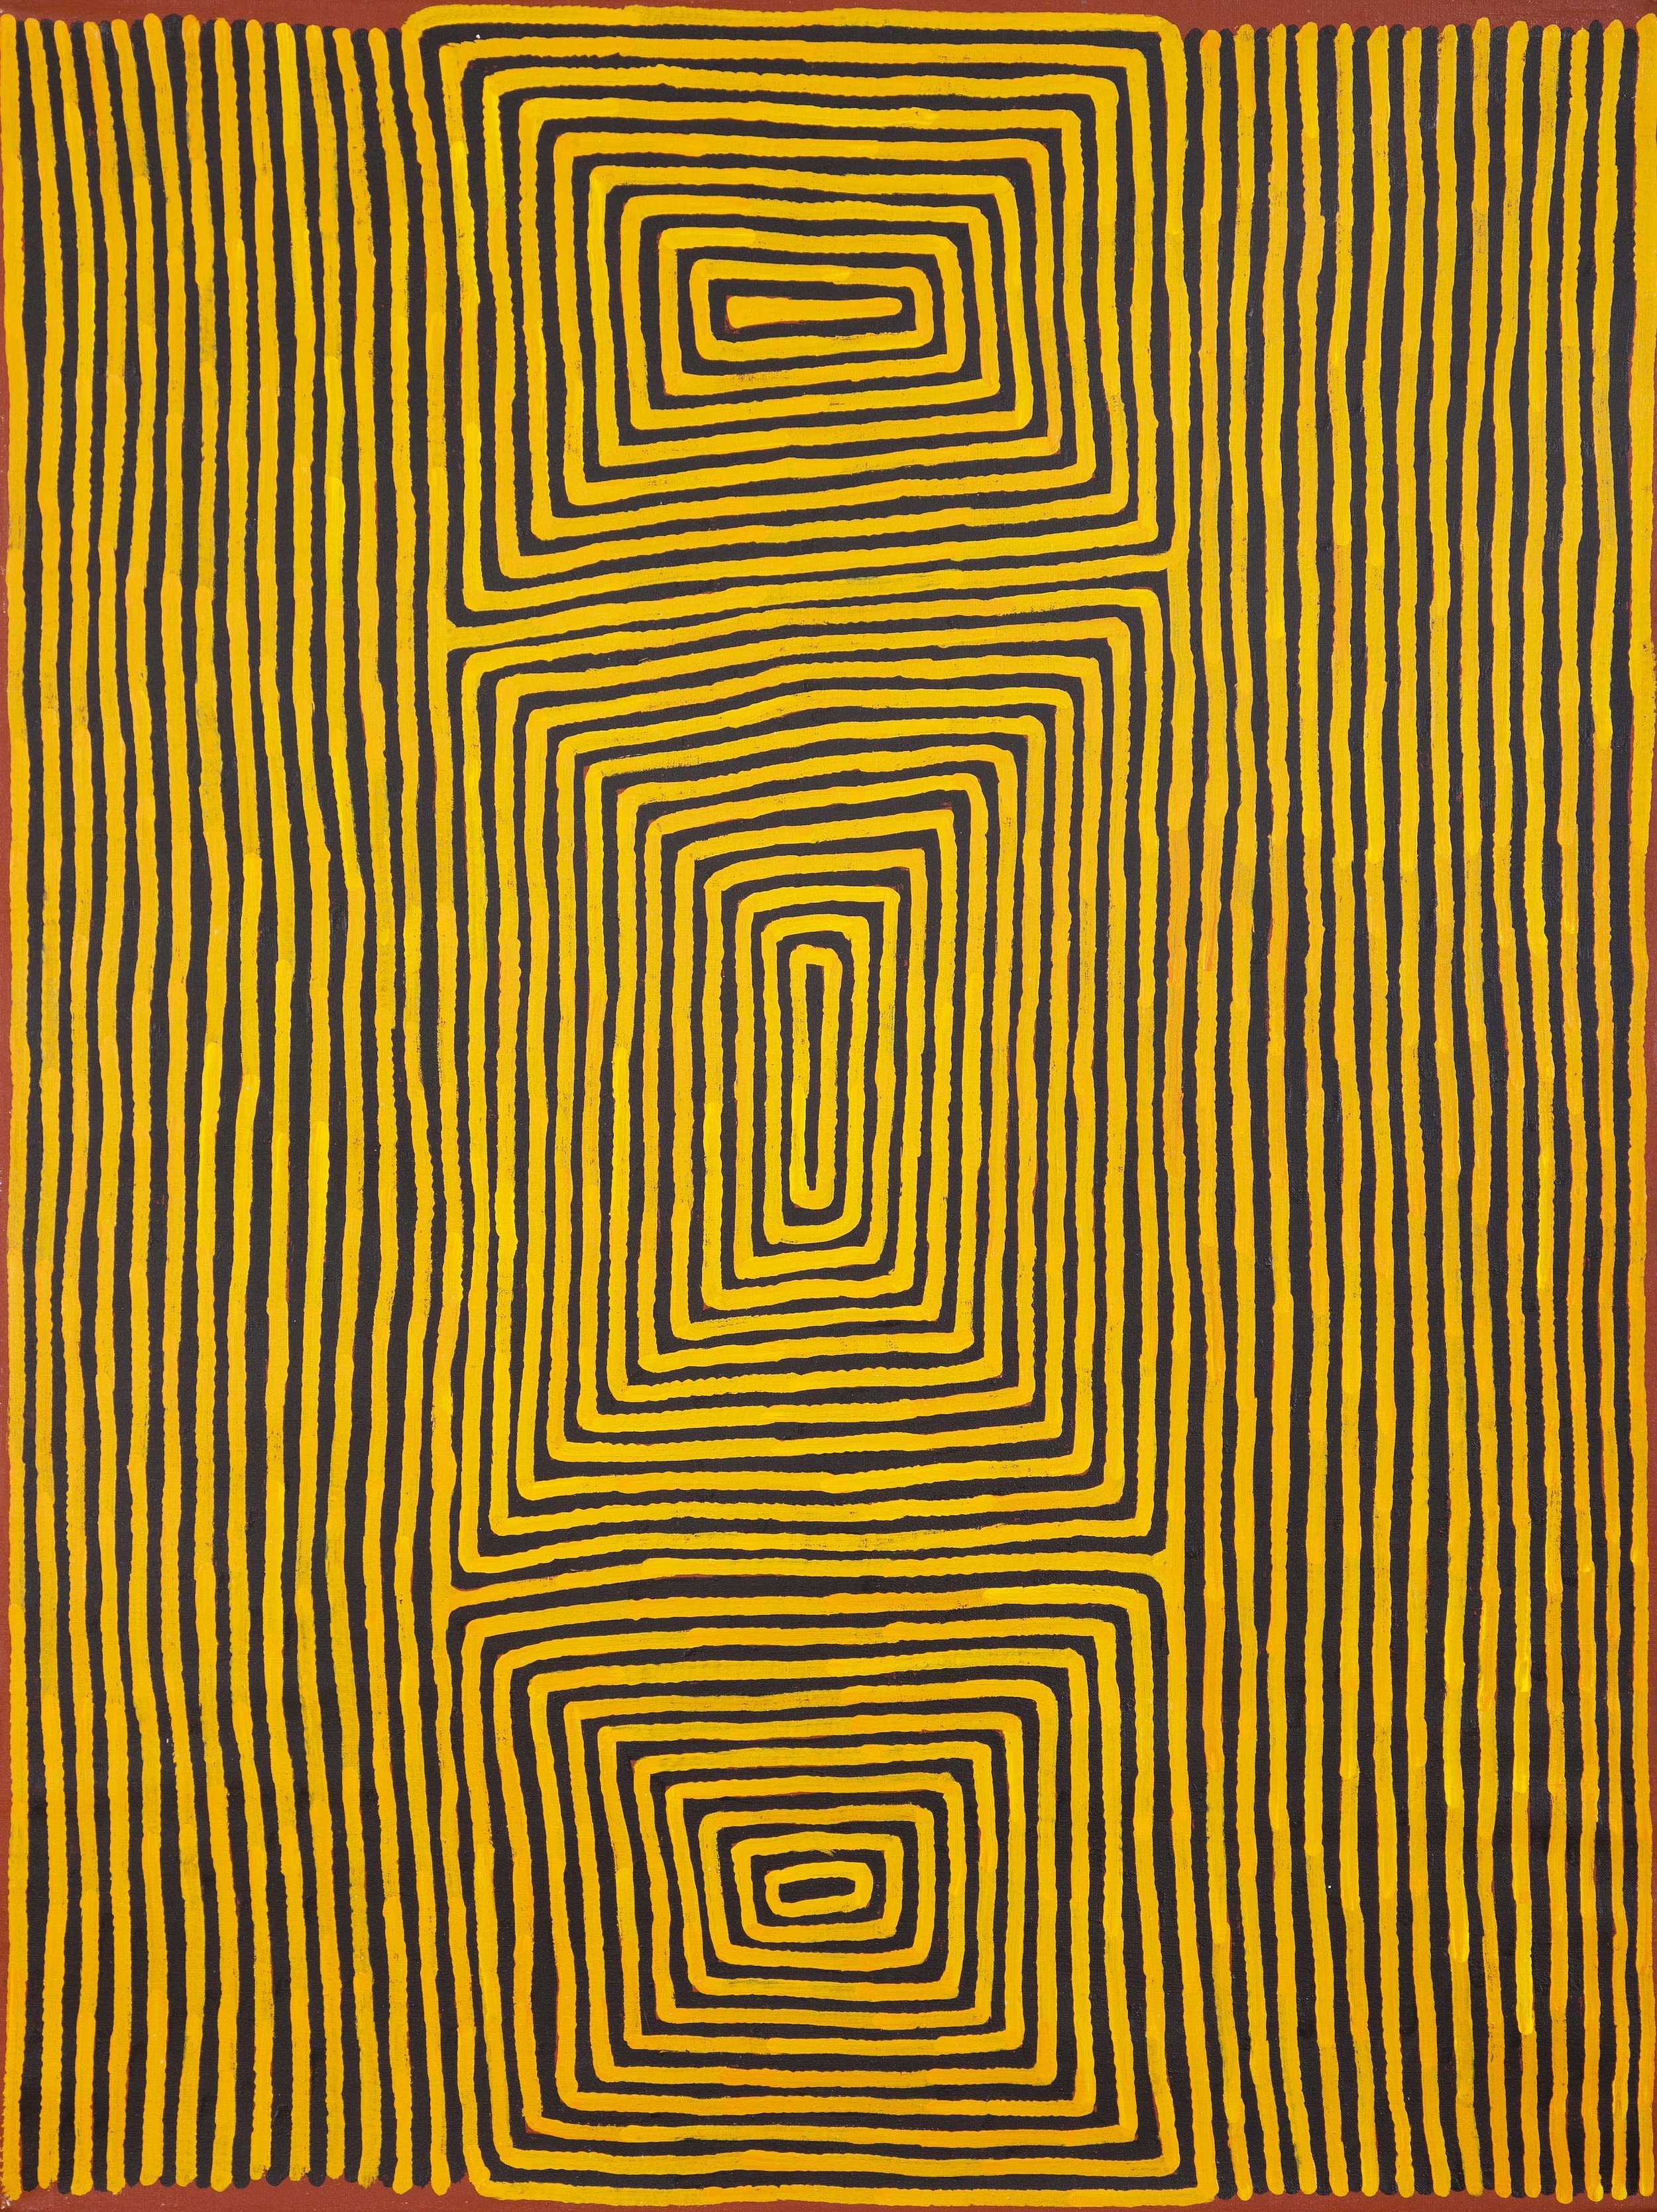 Ronnie Tjampitjinpa  Untitled  48 x 36 inches (122 x 91 cm) Acrylic on Belgian linen Papunya Tula Artists Catalog #RT1311018   EMAIL INQUIRY